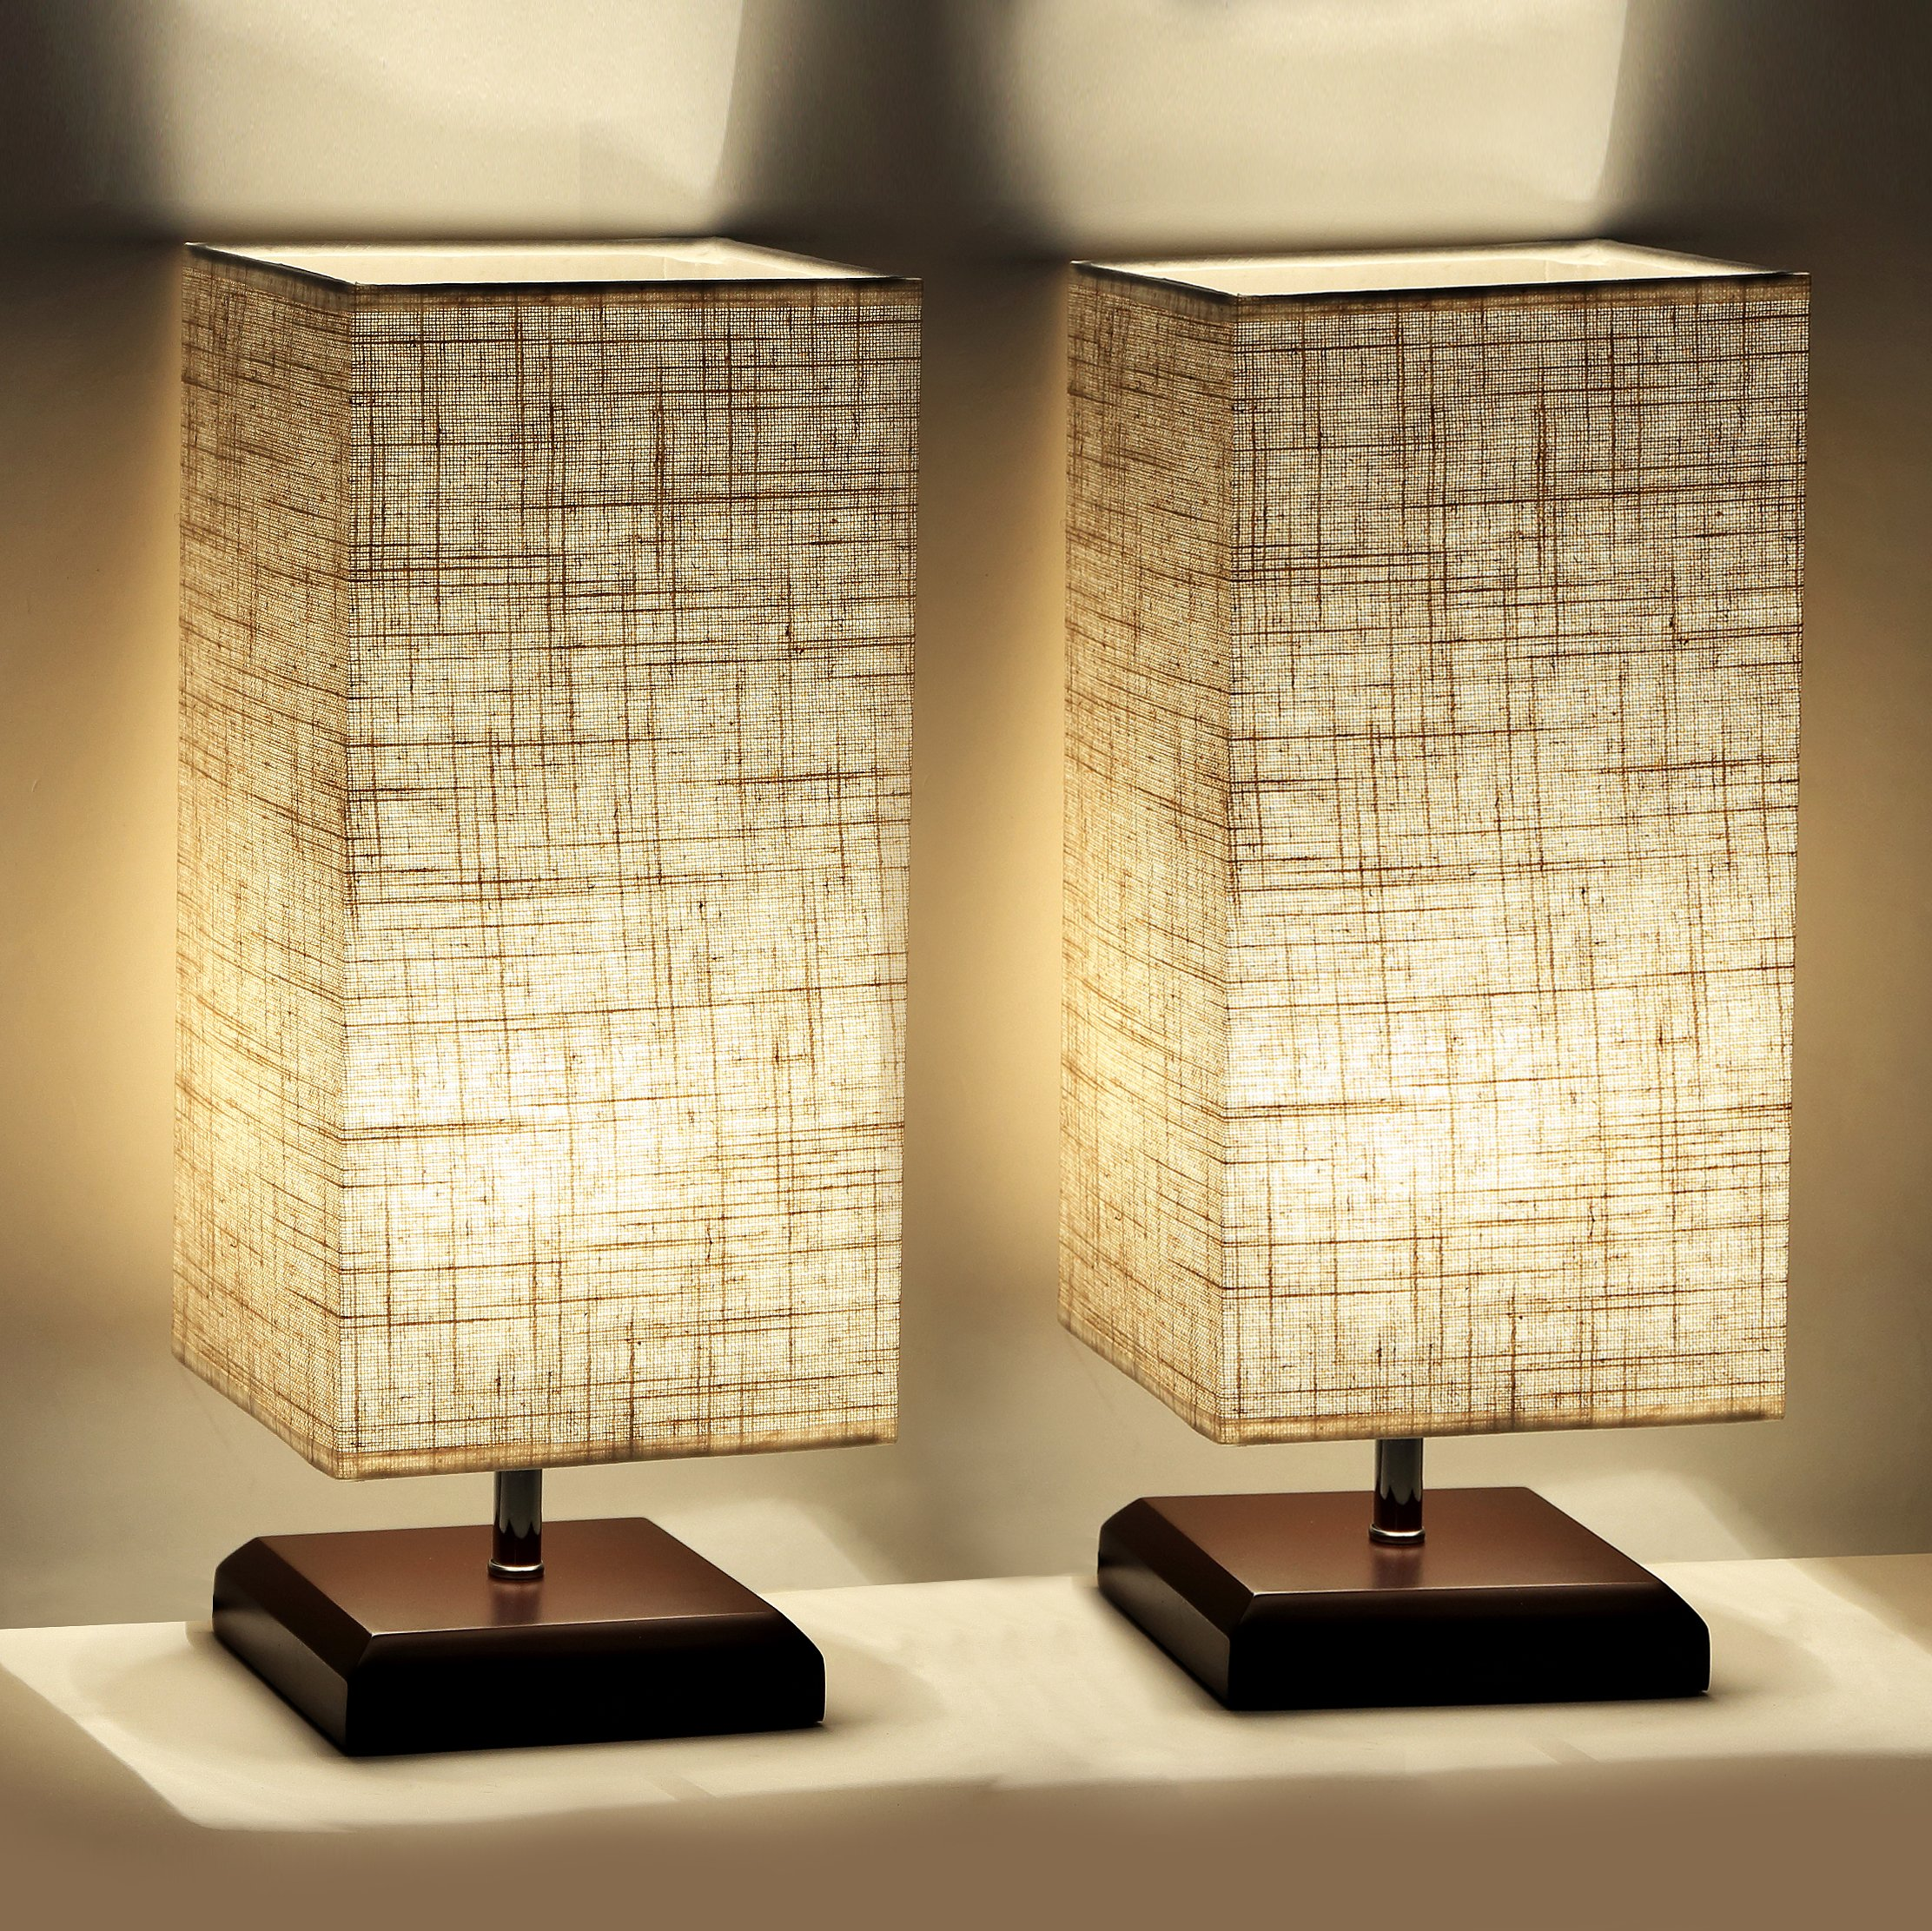 Bedroom Lamps On Ebay: Set Of 2 Table Lamps For Bedroom Living Room Bedside